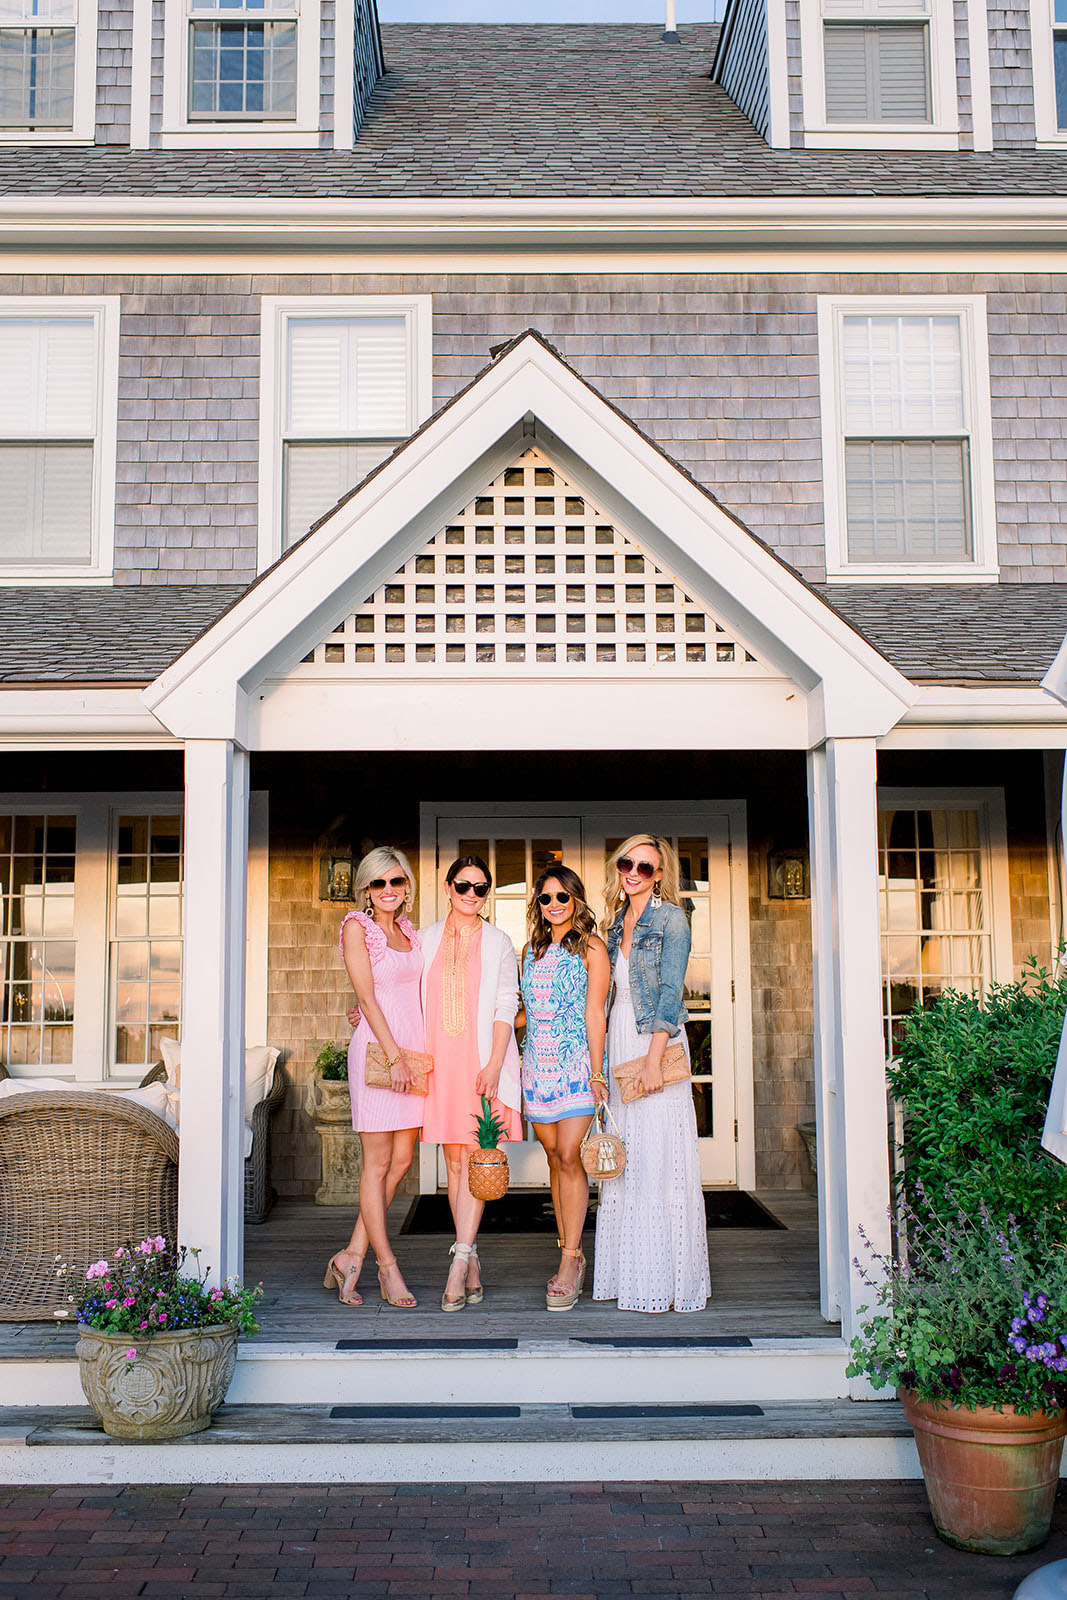 Summer in Nantucket Travel Guide | The Wauwinet